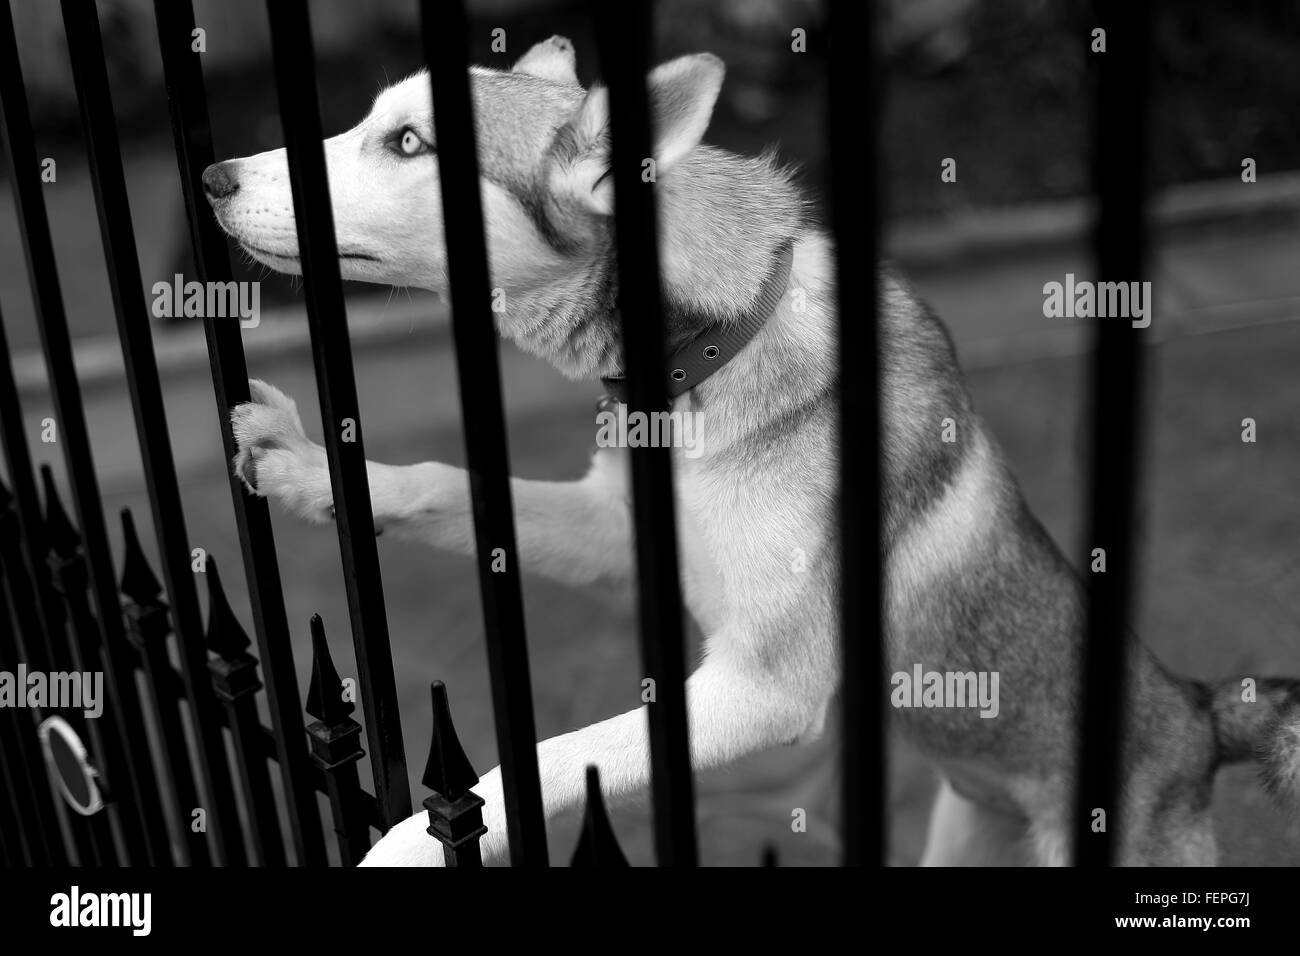 Side View Of Siberian Husky Rearing Up On Metal Gate - Stock Image